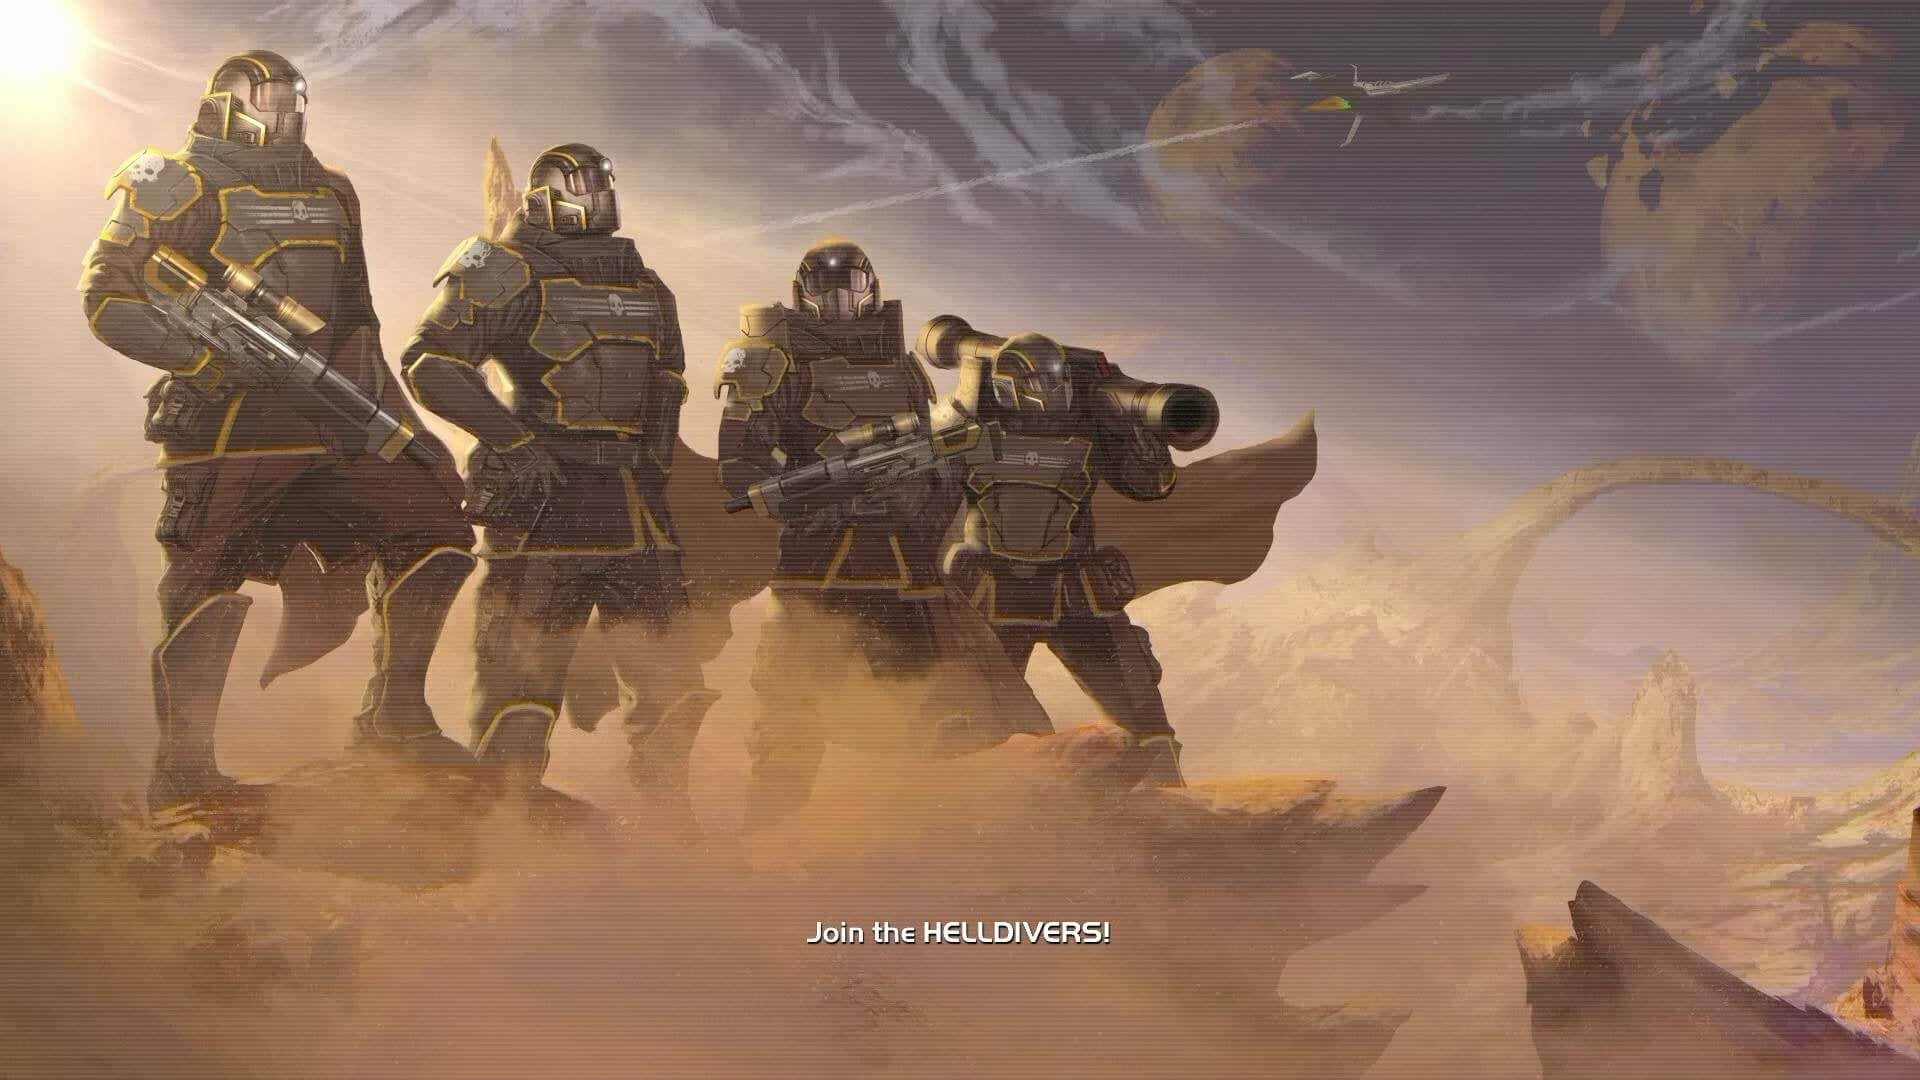 Join the Helldivers!